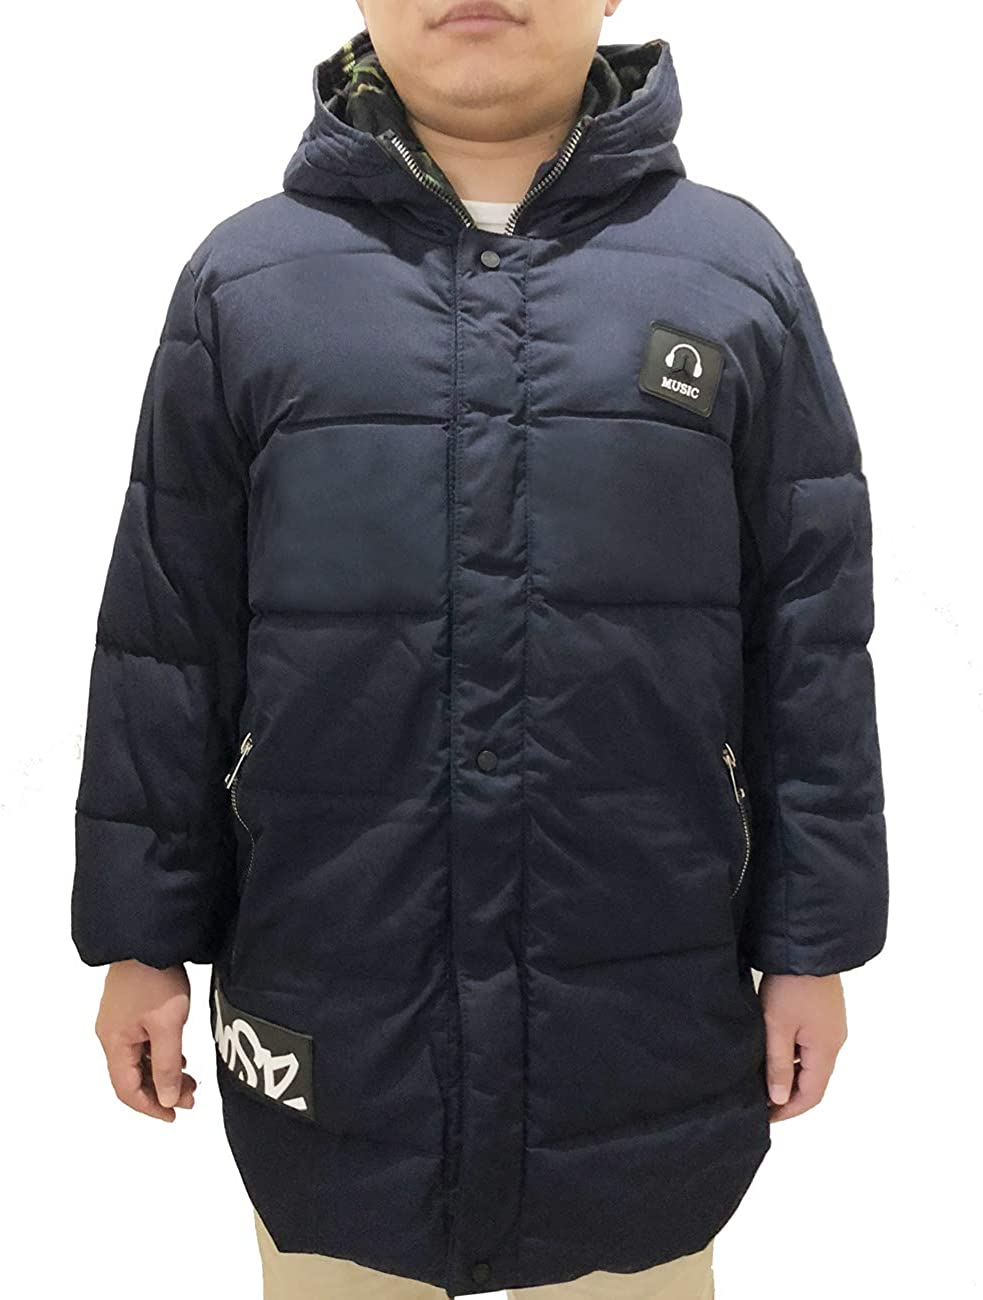 Zoulee Mens Fashion Winter Thick Puffer Jacket Coat with Hood Large Size